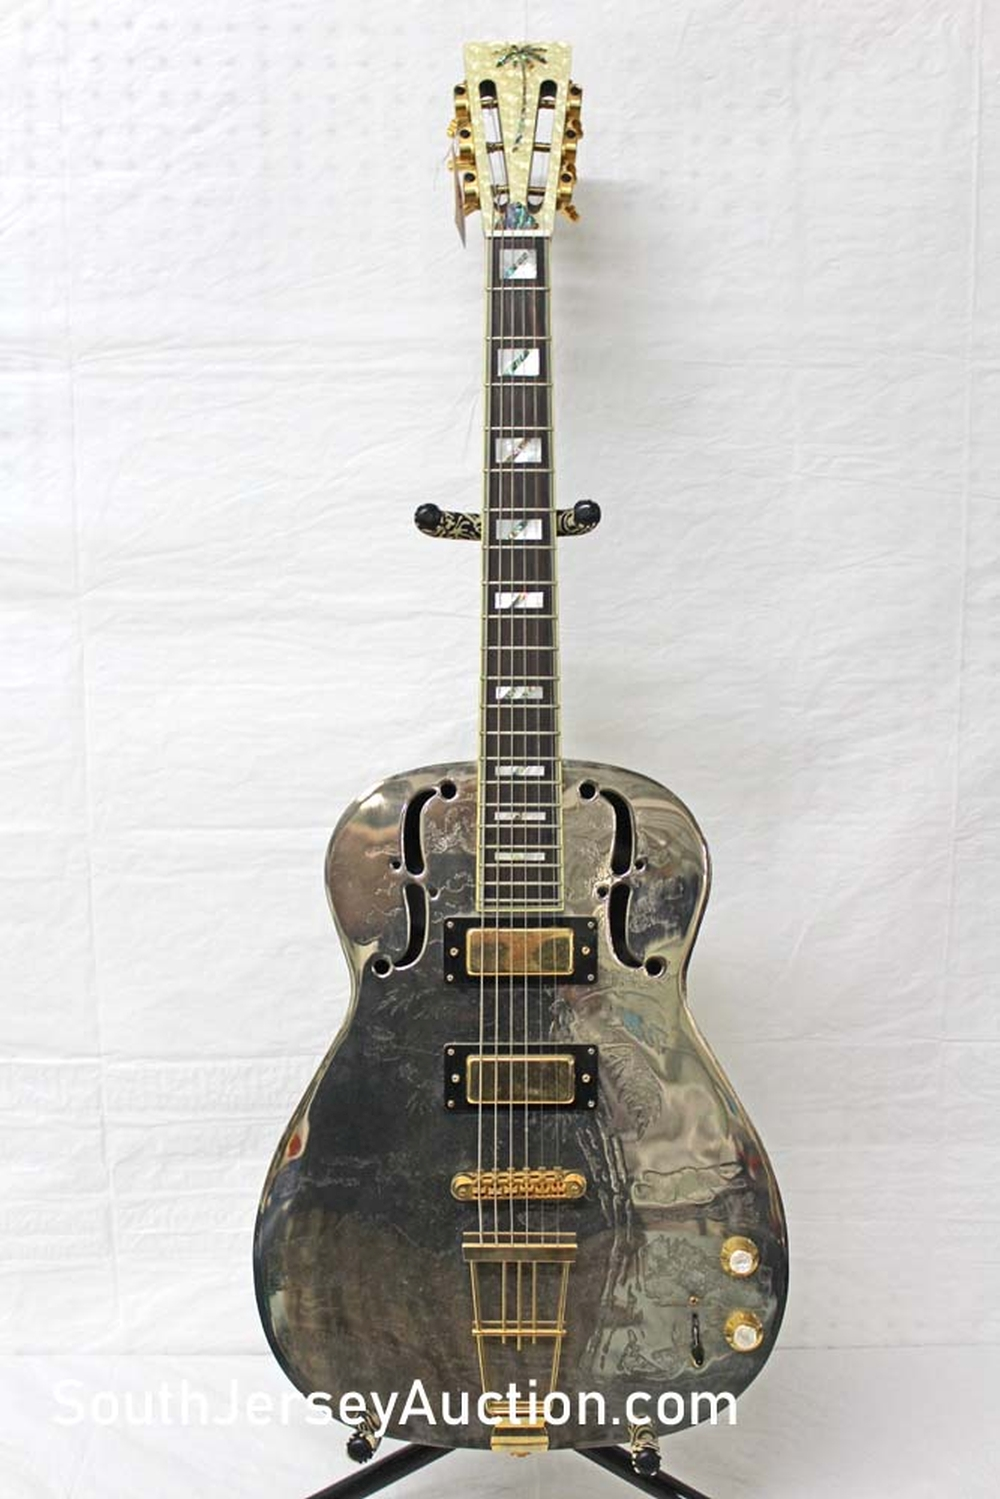 Galveston, year unknown,  double F hole, rosewood fretboard, gold hardware, chrome plated bell brass engraved, mother of pearl head with inlaid two tone palm tree, very good condition